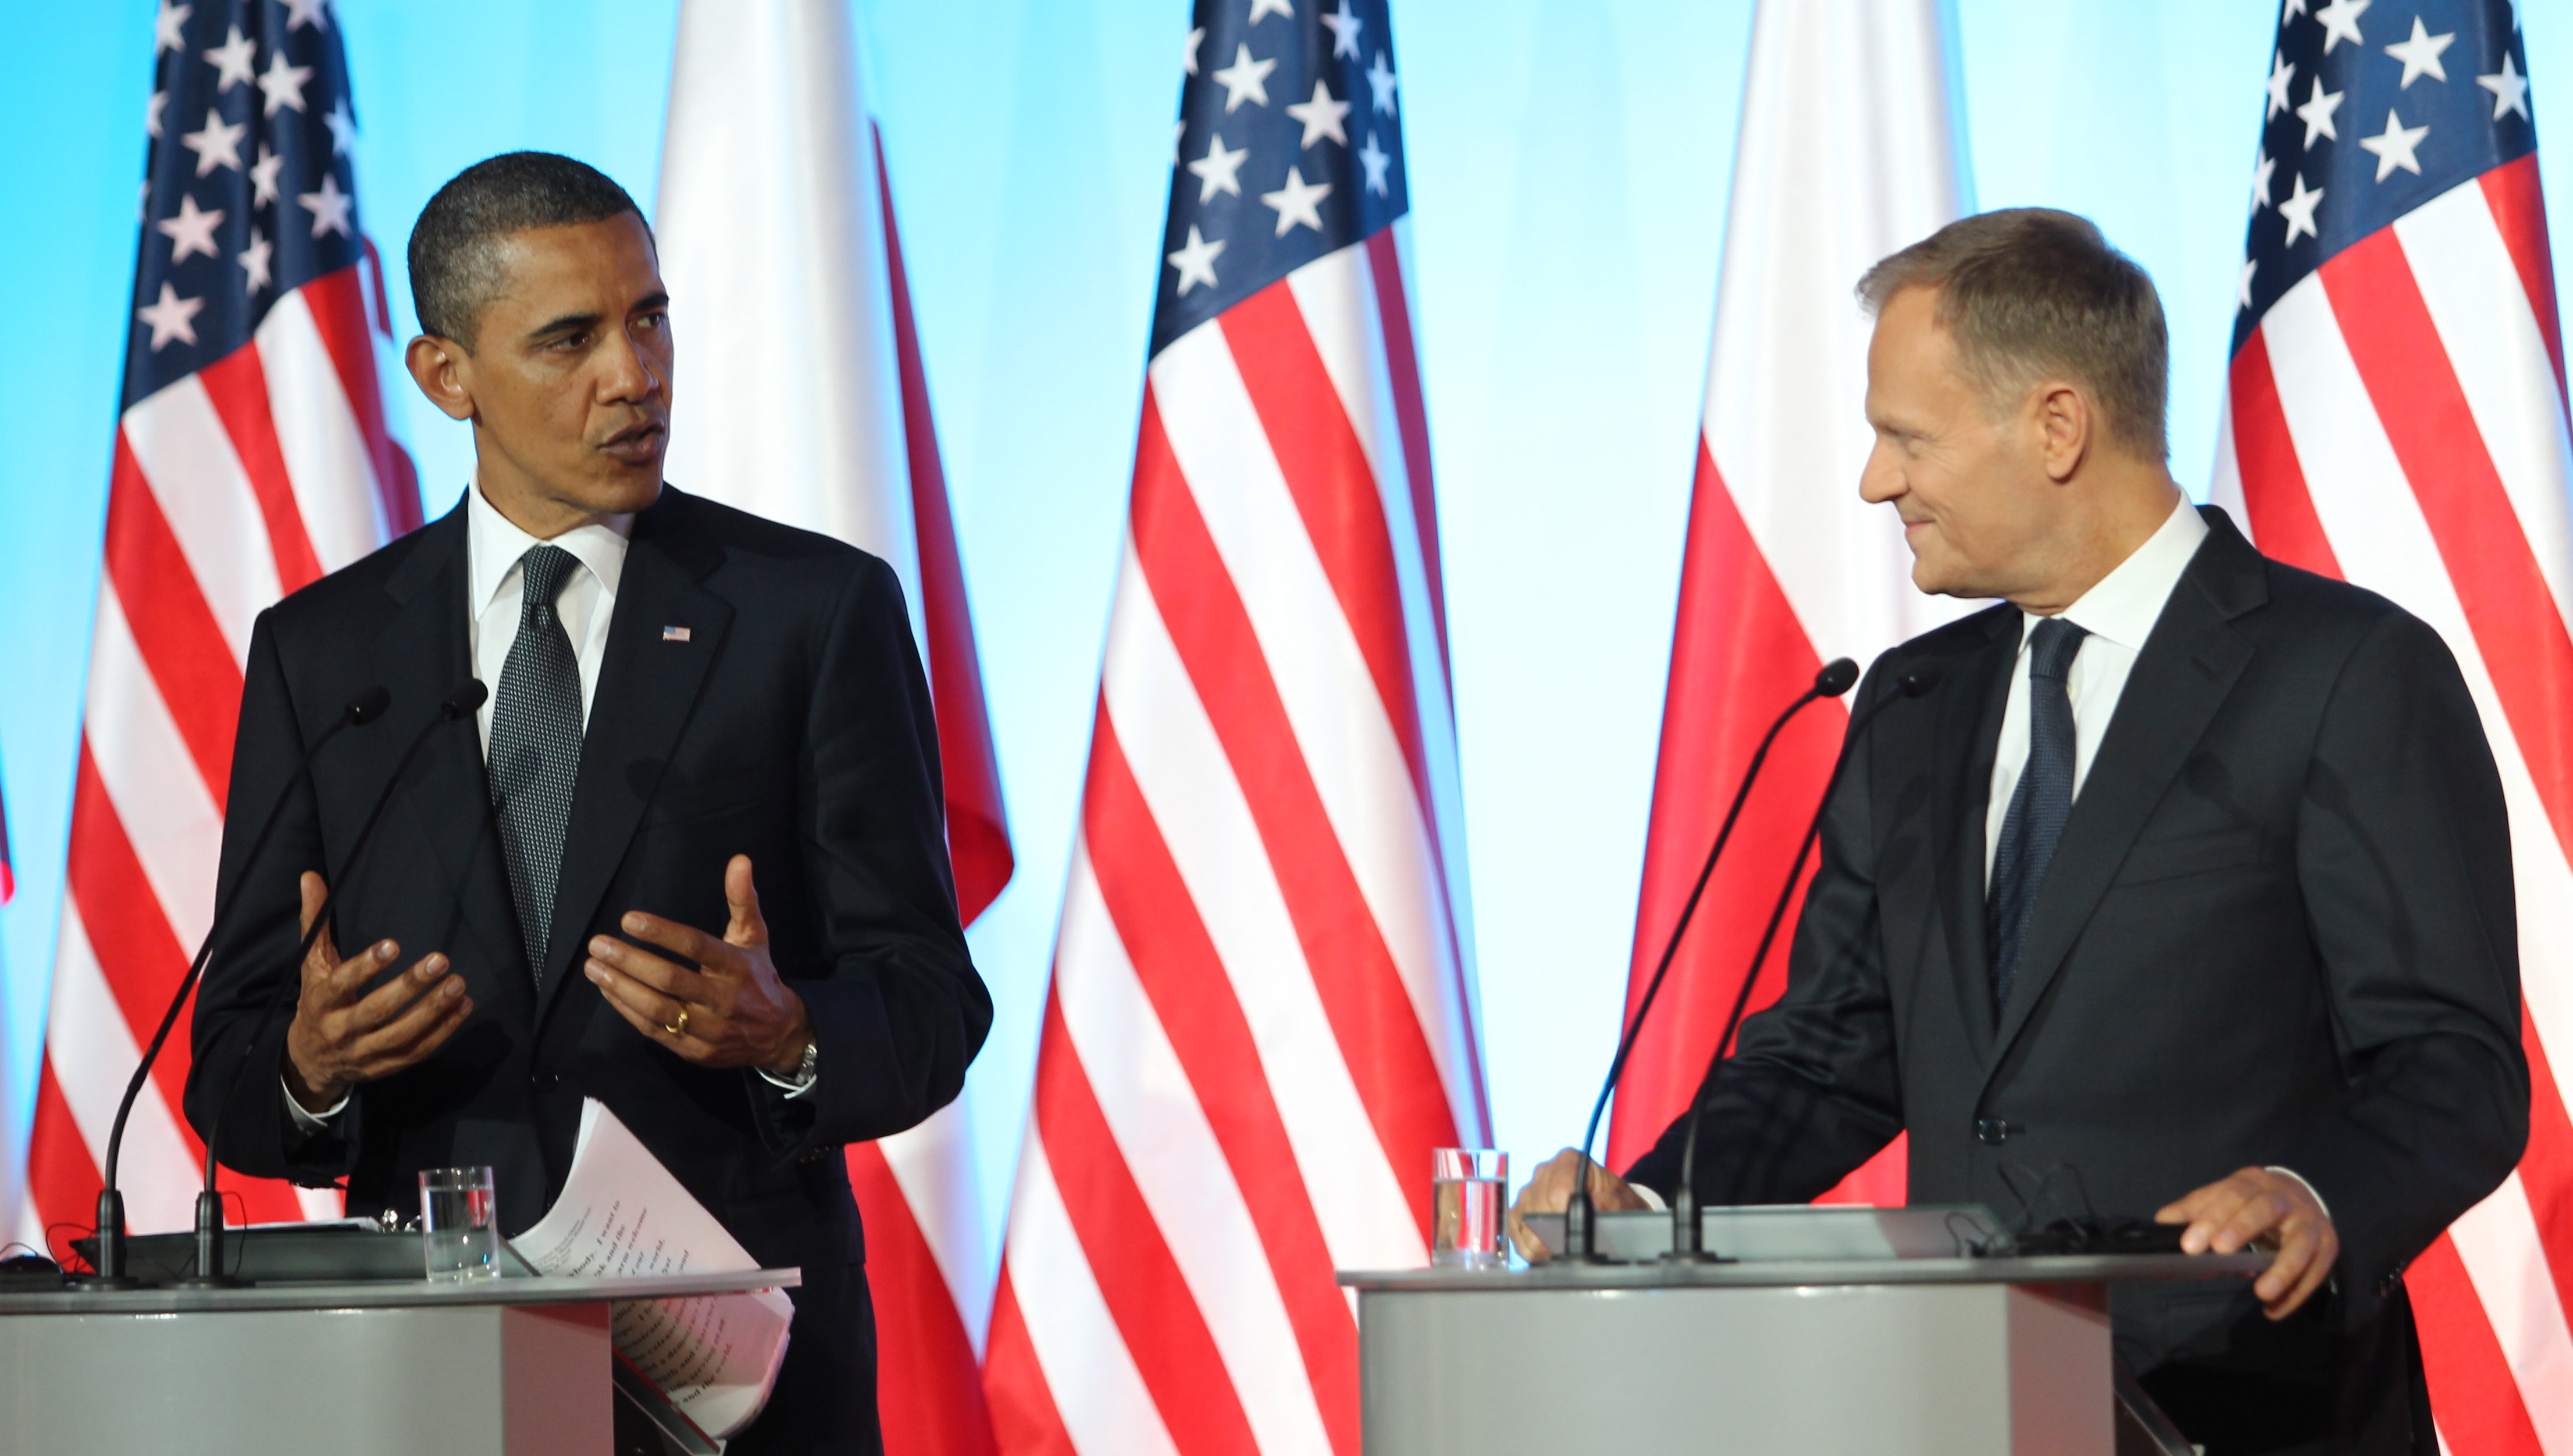 US President Barack Obama meets with PM Donald Tusk in Warsaw. Photo: PAP/Radek Pietruszka